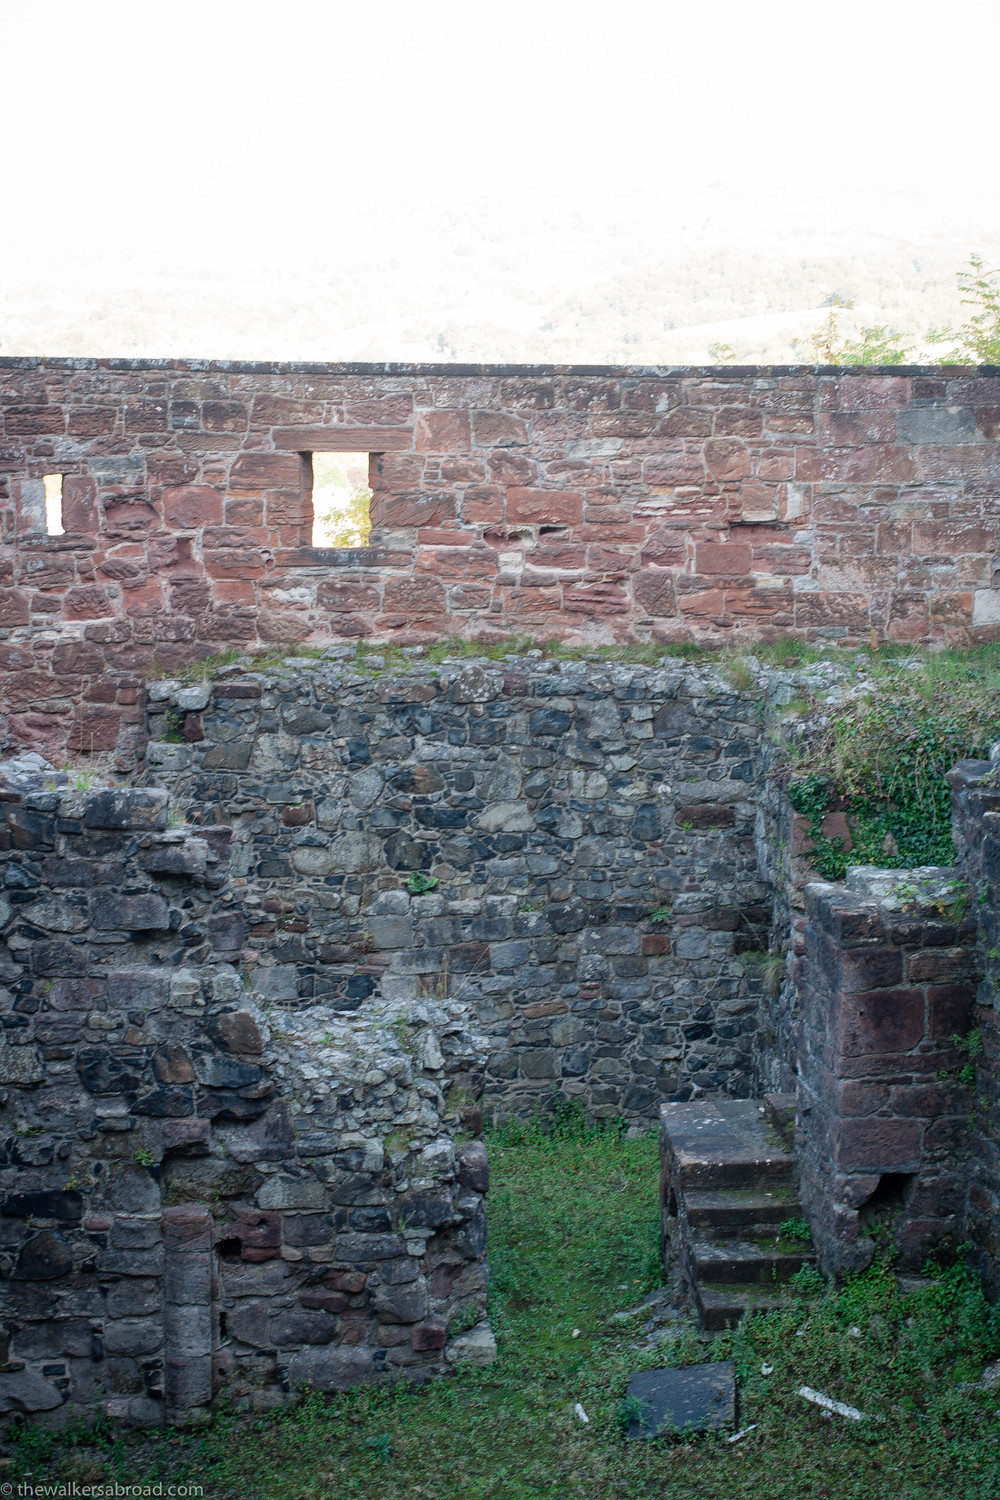 Remnants of the Wallace Tower, named for William Wallace.